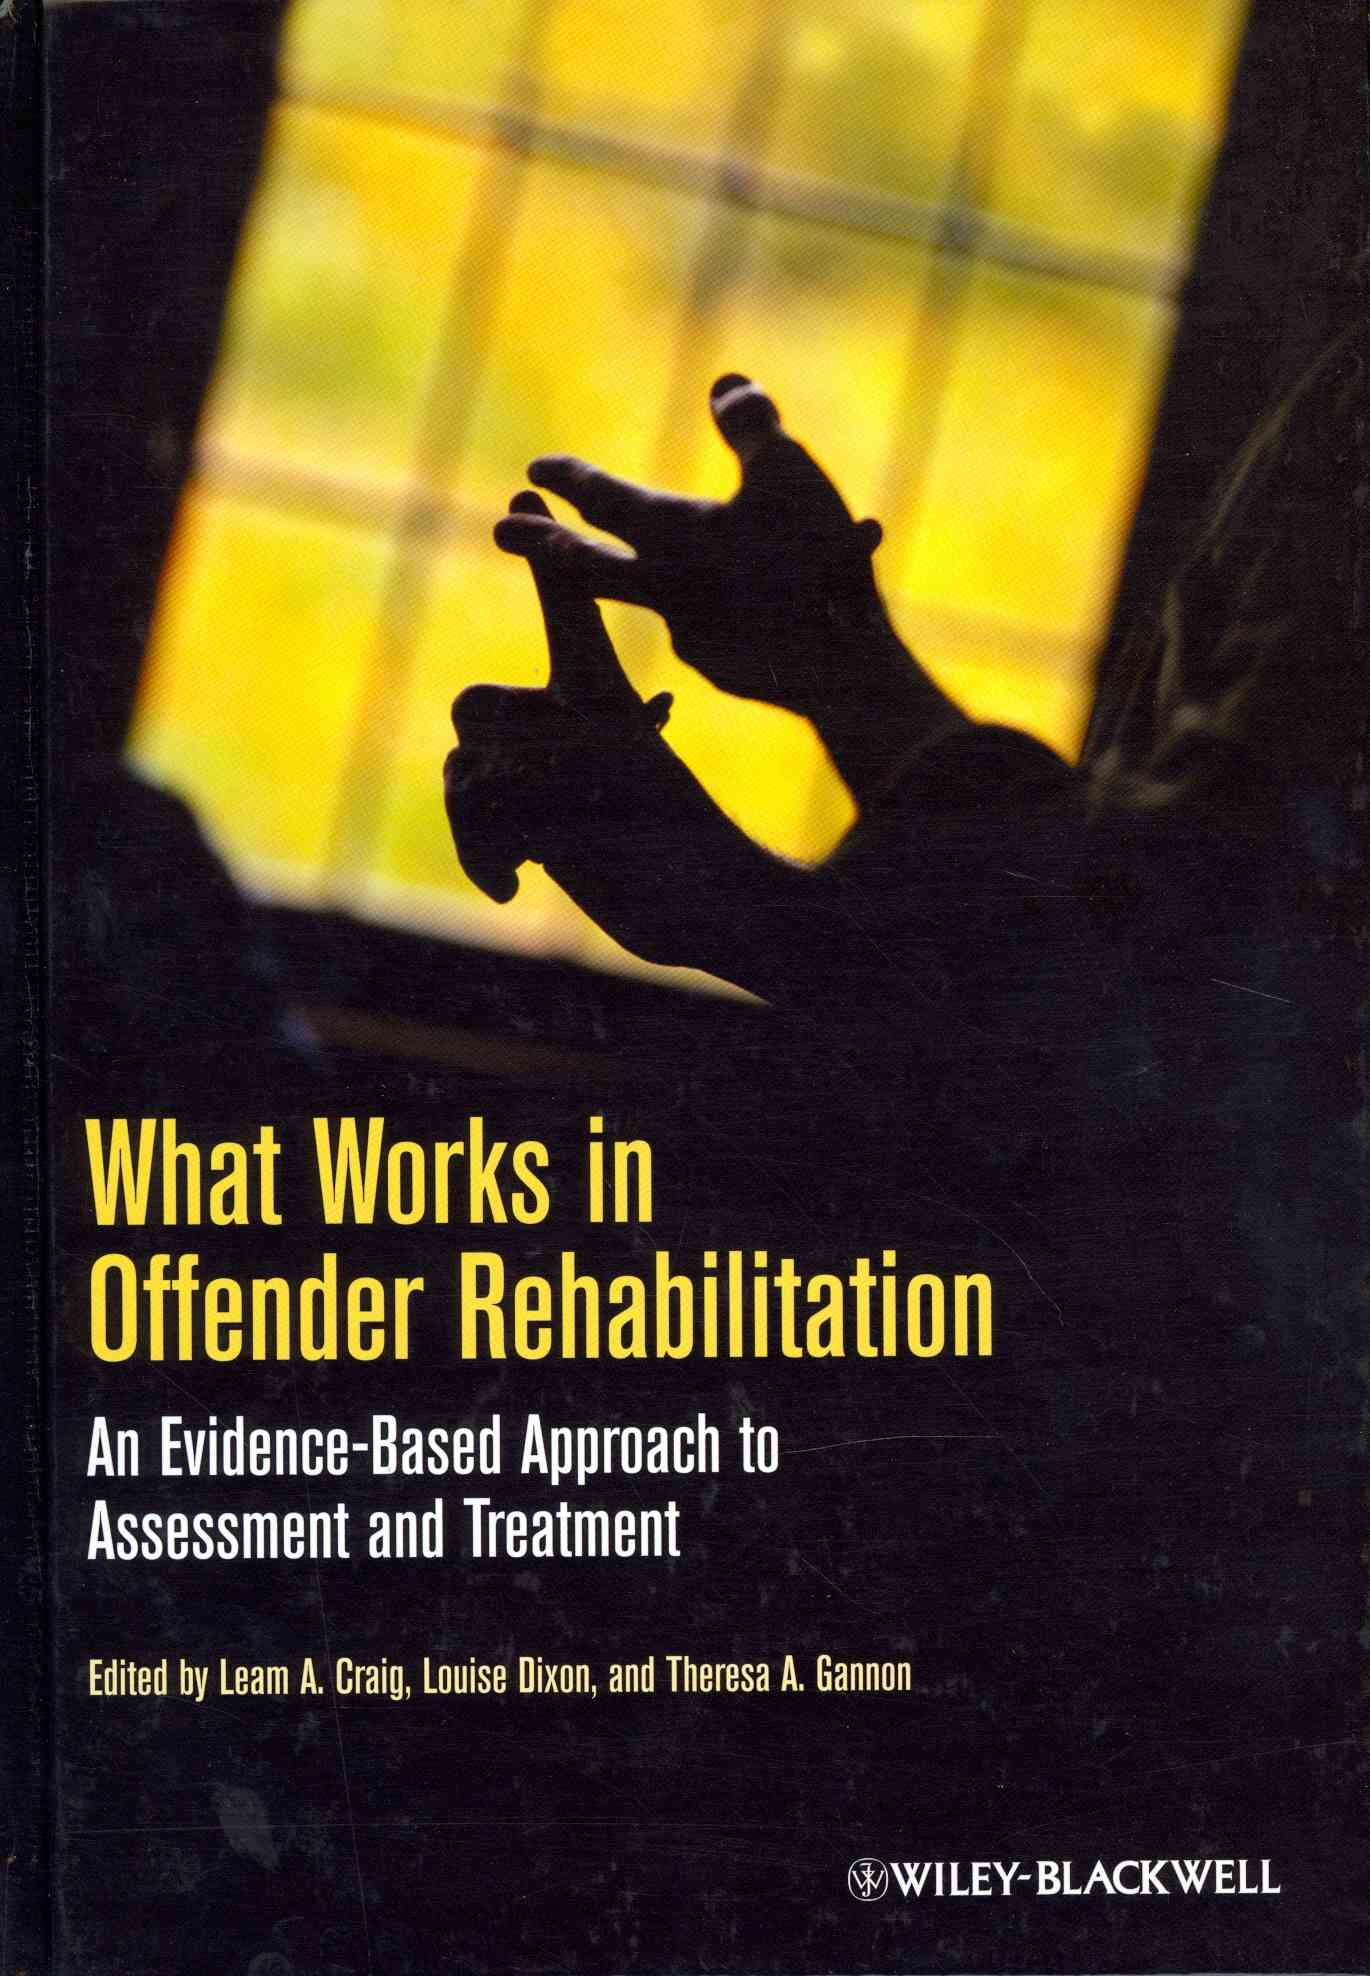 What Works in Offender Rehabilitation By Craig, Leam A.